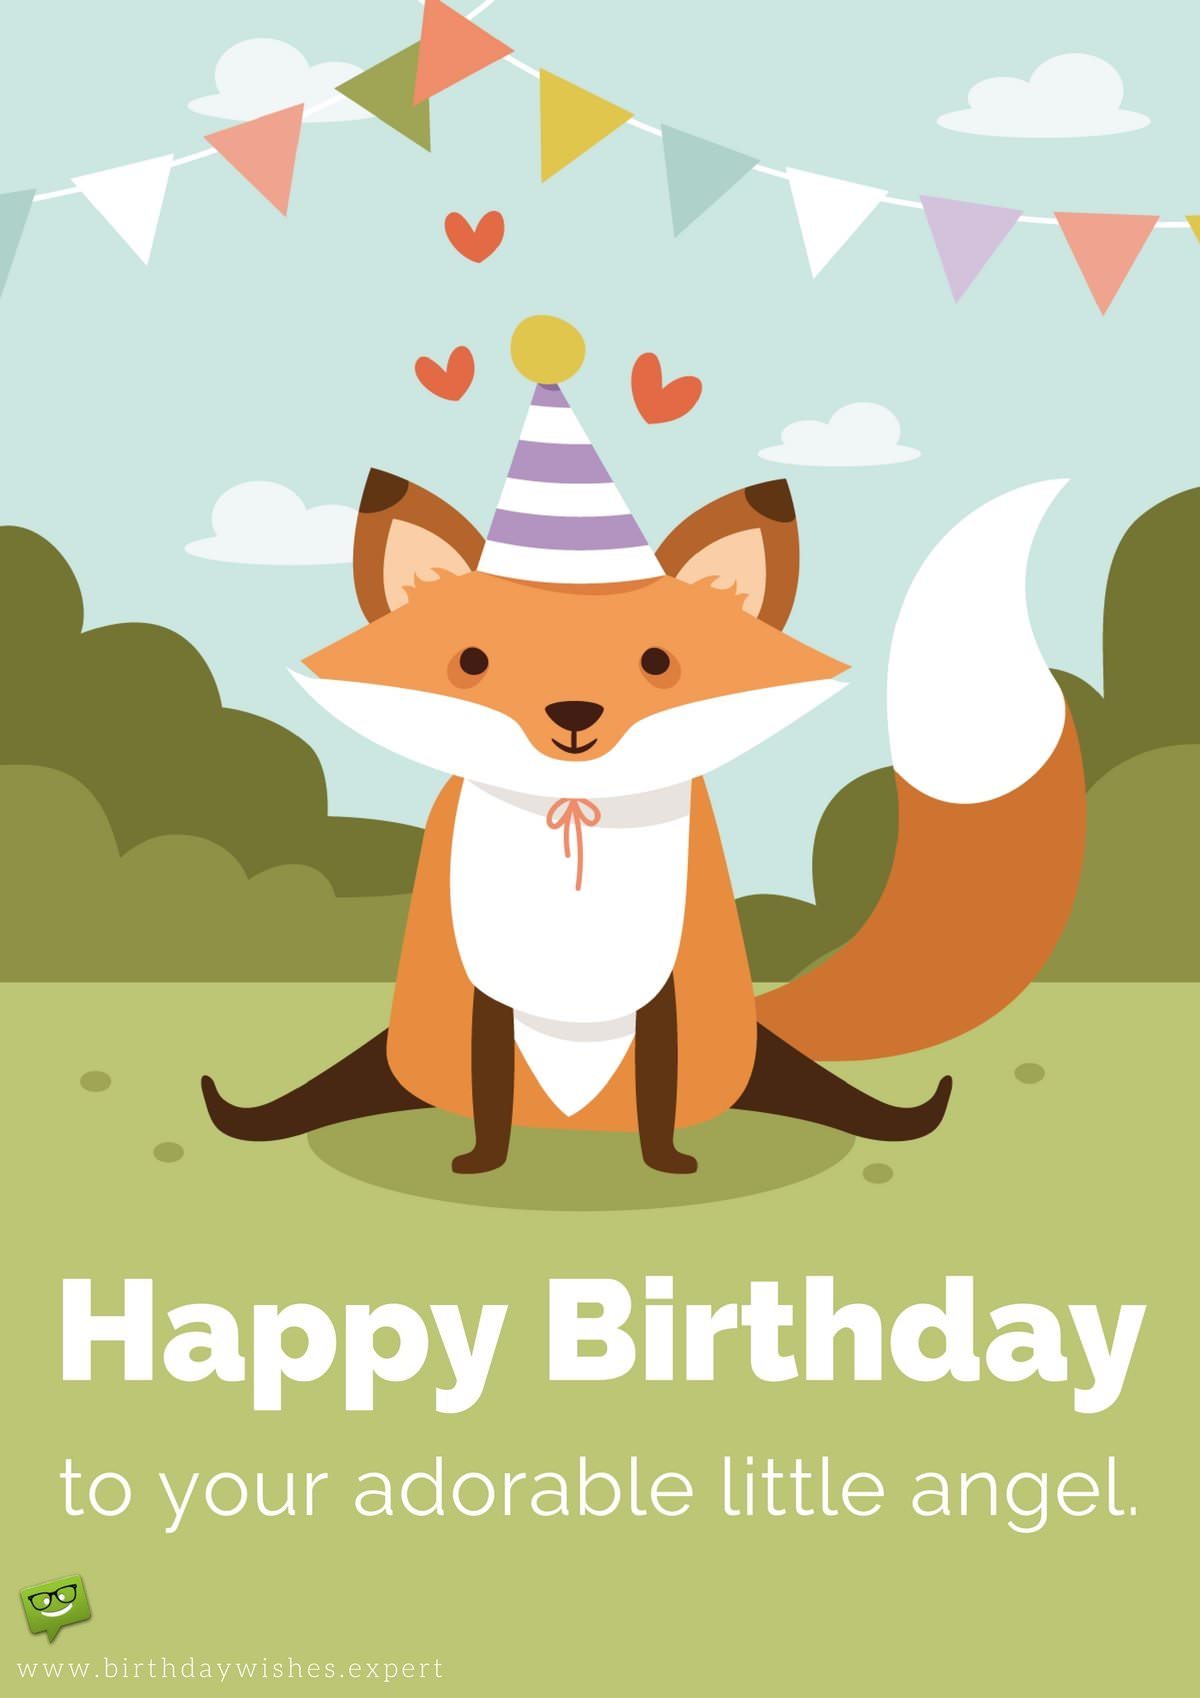 200 free birthday ecards for friends and family part 3 happy birthday to your adorable little angel m4hsunfo